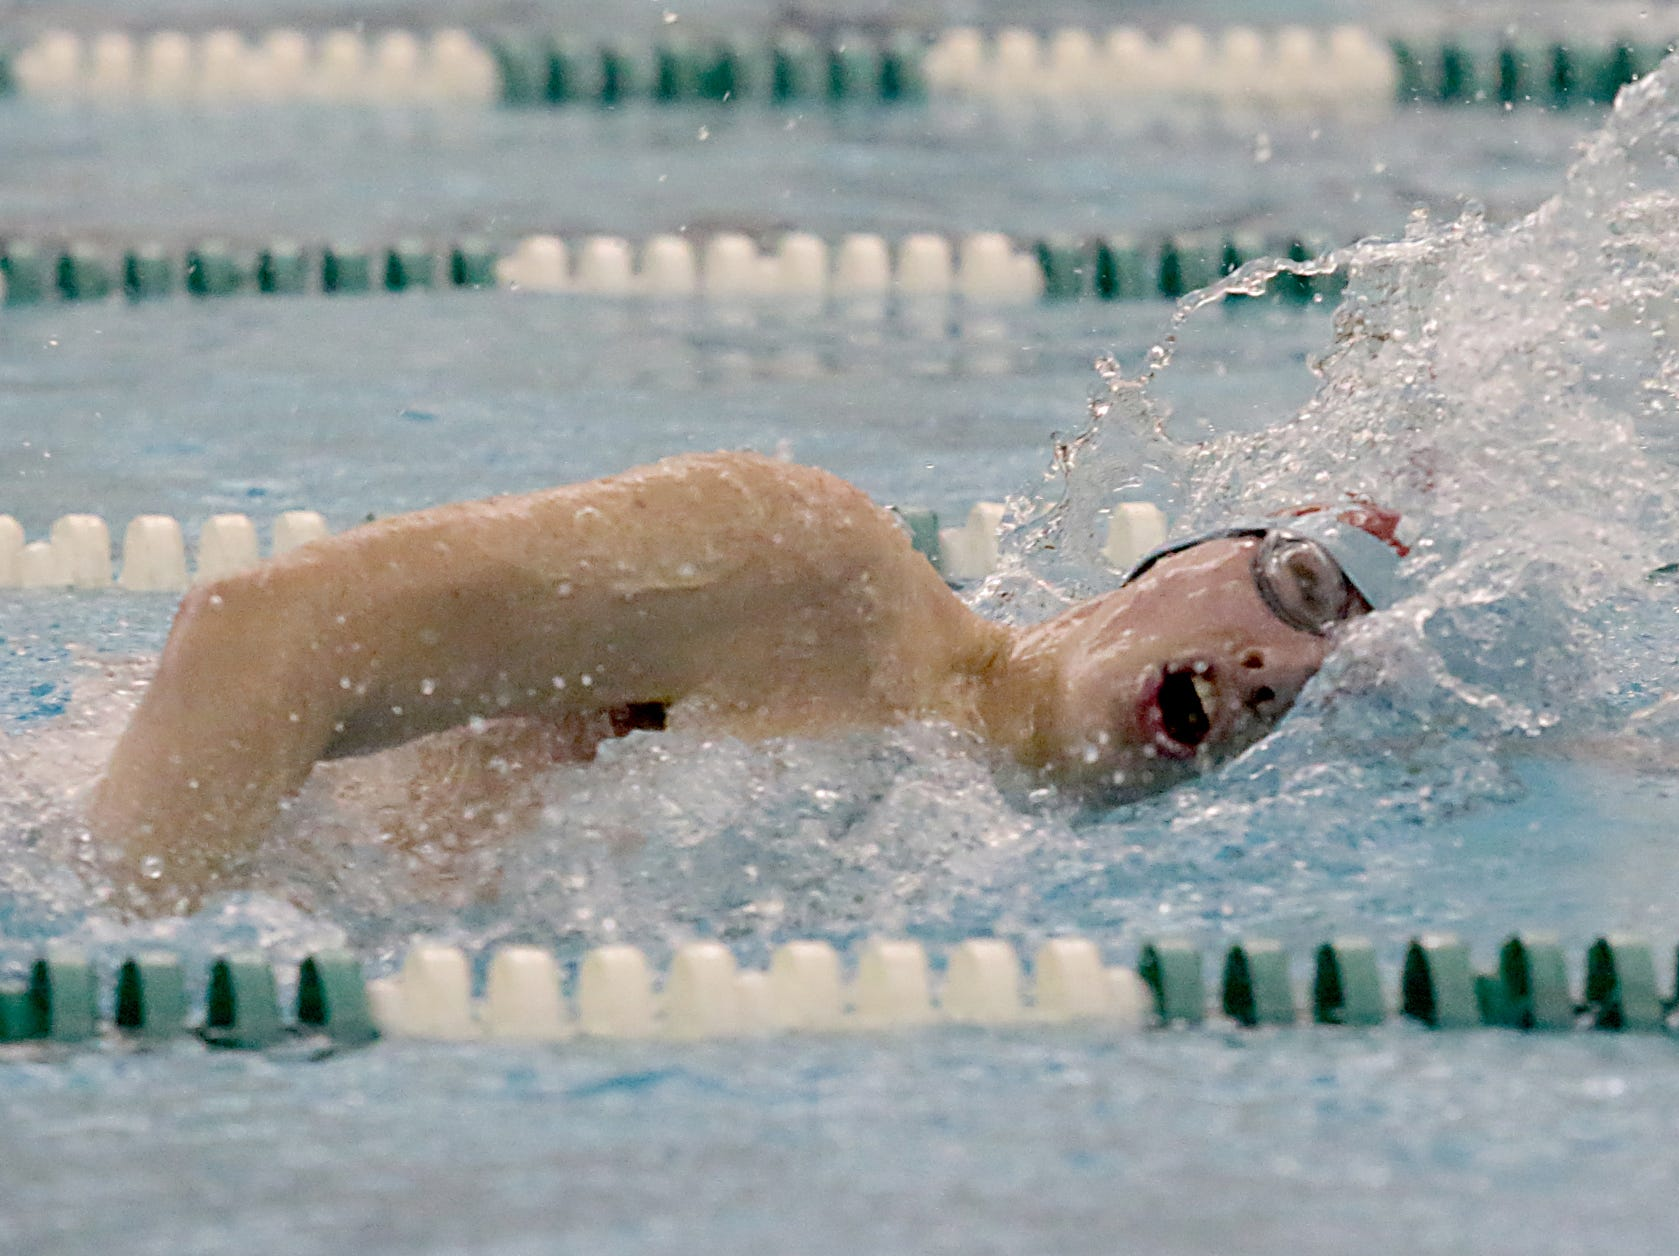 Zach Cunningham, from Kings, competes in the 200-yard freestyle during the Division I and Division II sectionals at Mason High School in Mason Friday, Feb. 8, 2019.